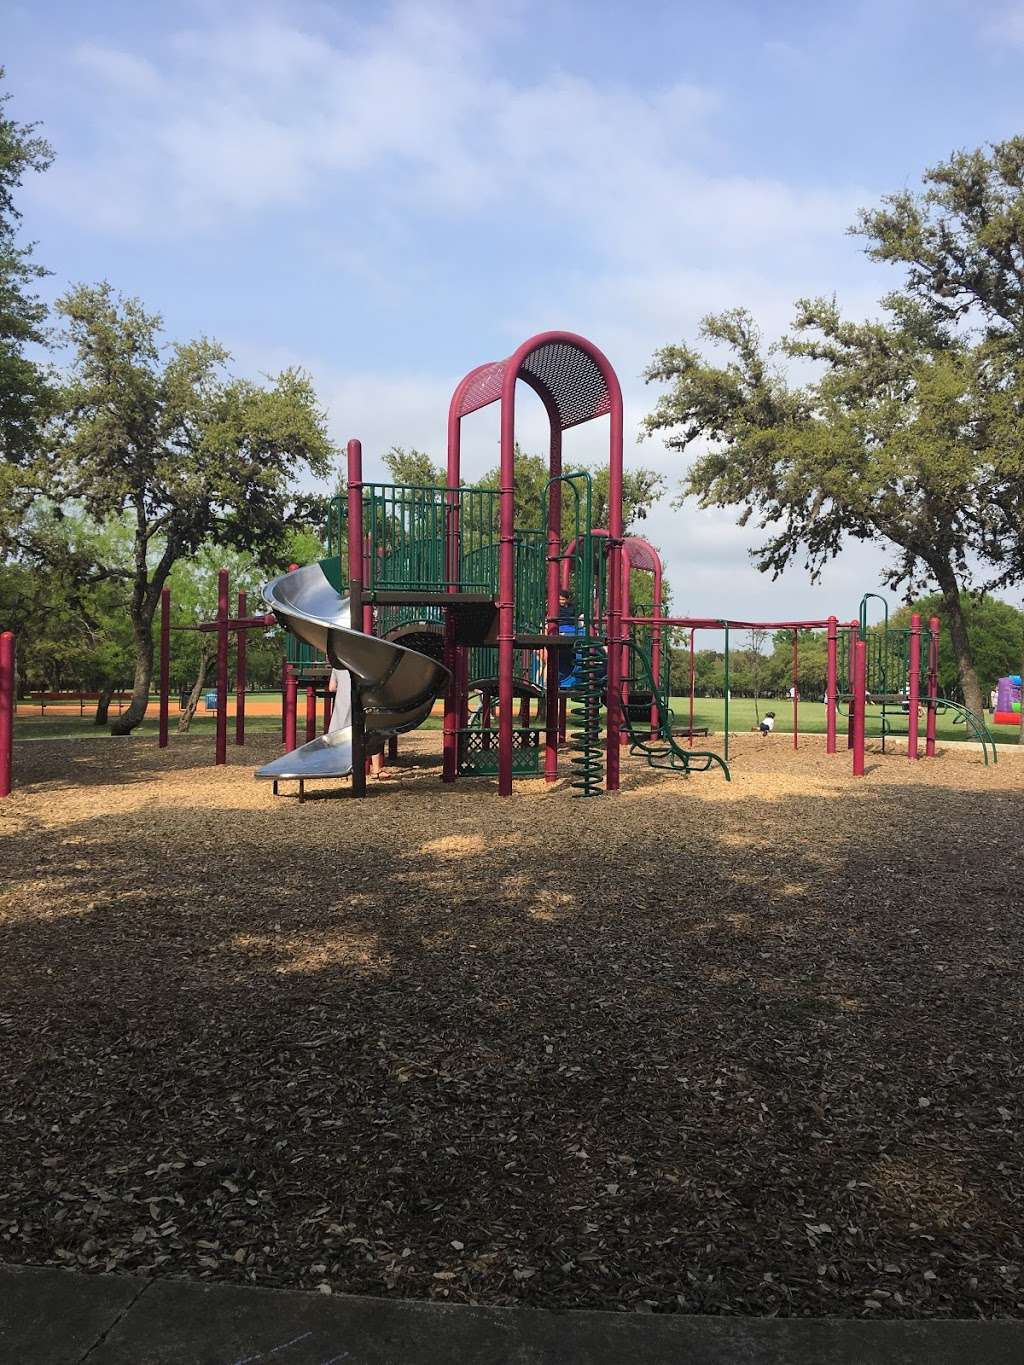 Blossom Park - park  | Photo 2 of 10 | Address: 15015 Heimer Rd, San Antonio, TX 78232, USA | Phone: (210) 207-7275